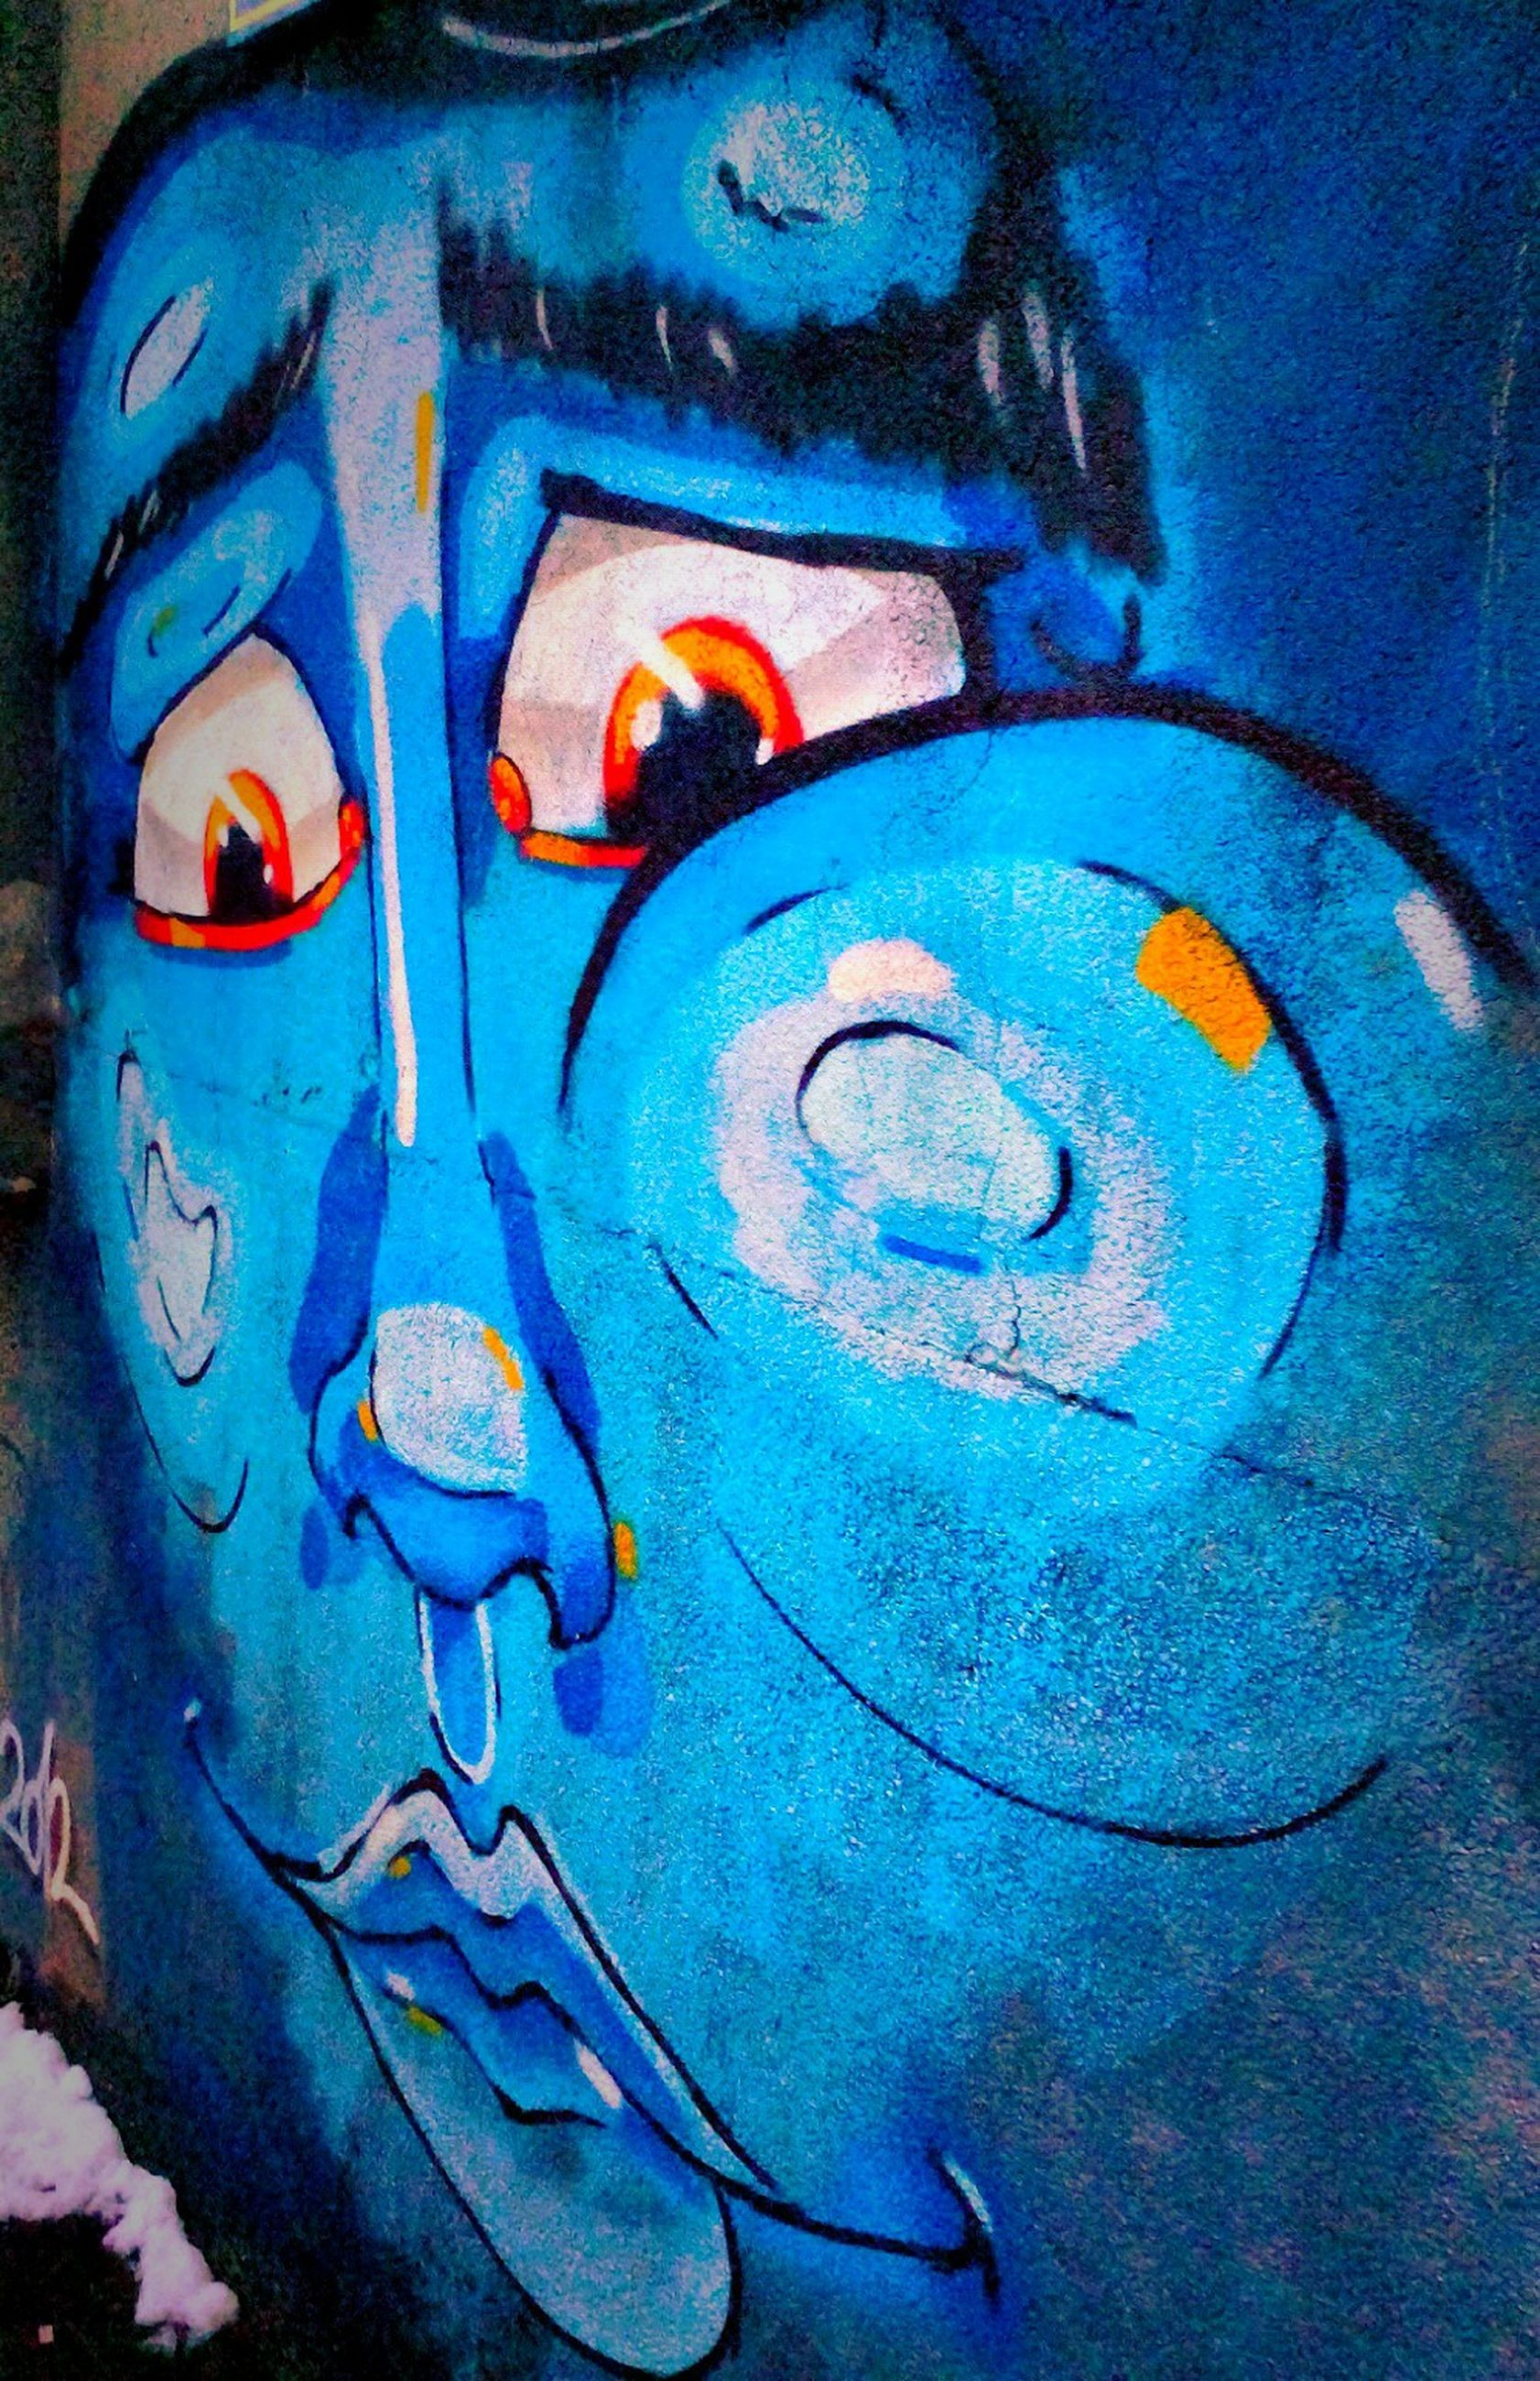 art and craft, creativity, art, graffiti, blue, weathered, close-up, human representation, wall - building feature, multi colored, abandoned, old, paint, run-down, damaged, no people, street art, deterioration, metal, animal representation